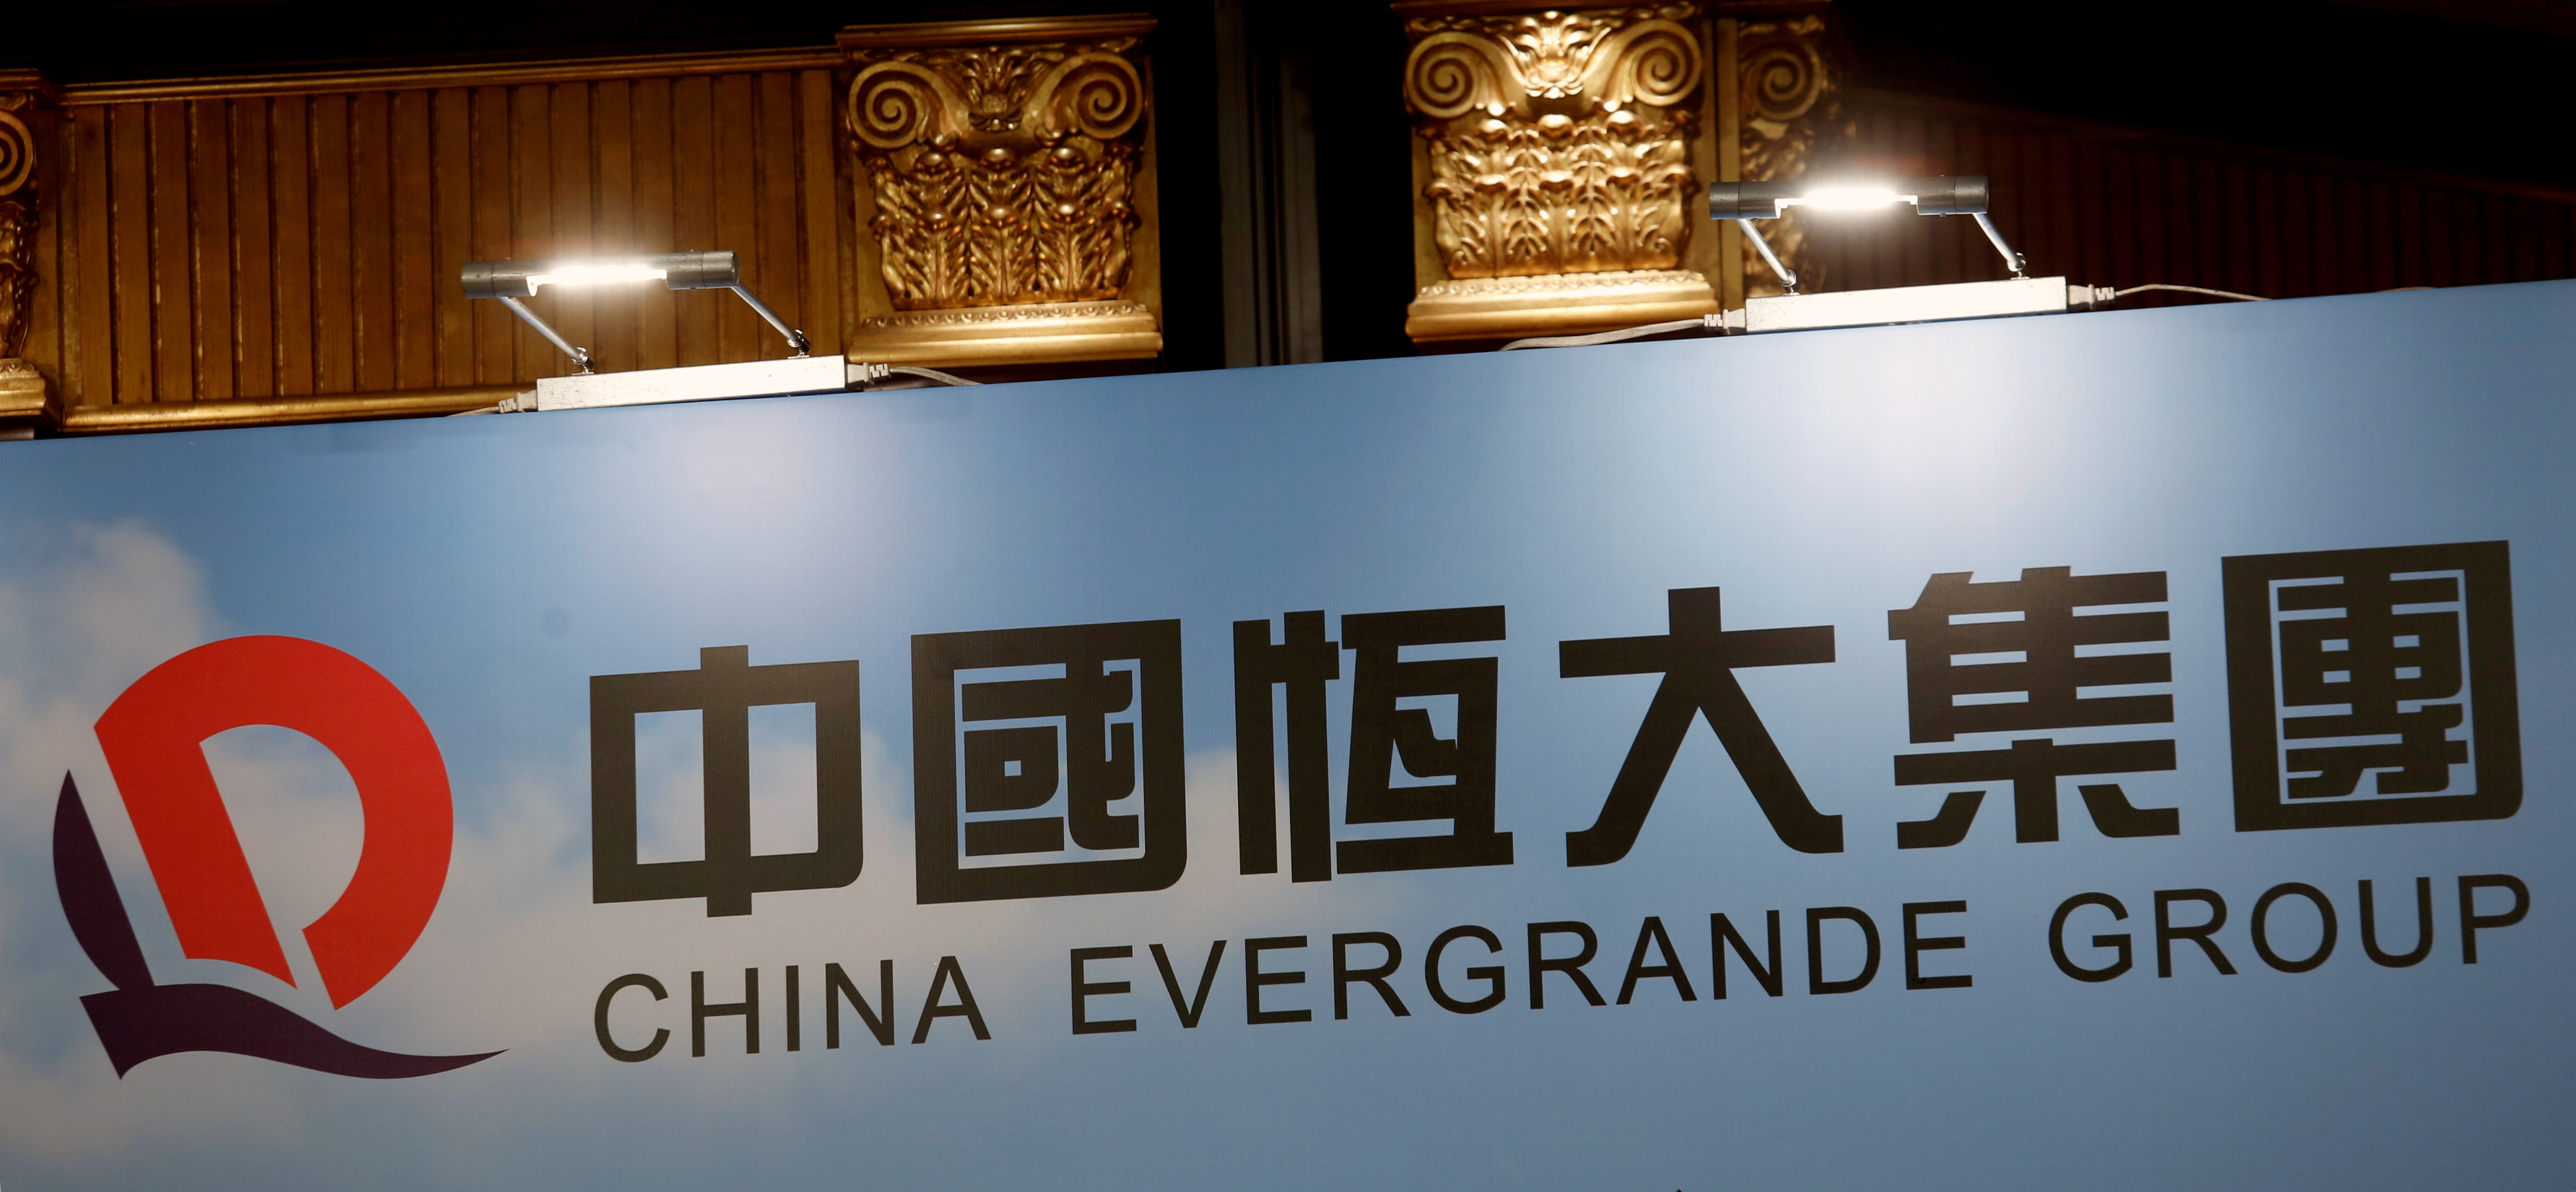 A logo of China Evergrande Group is displayed at a news conference on the property developer's annual results in Hong Kong, China March 28, 2017. REUTERS/Bobby Yip/File Photo